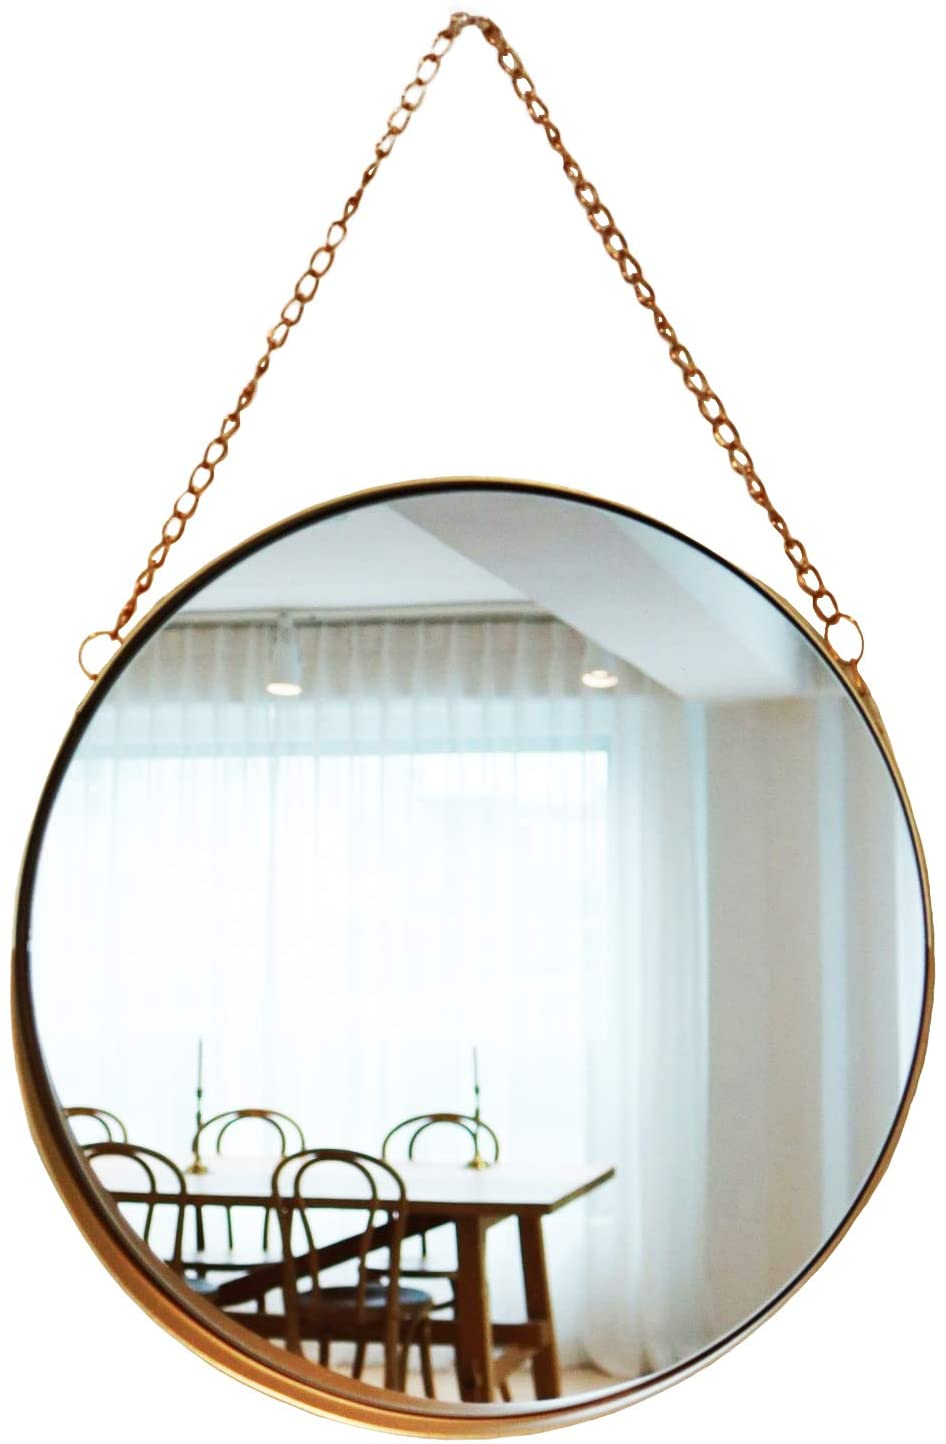 Amazon Com April Box Decorative Hanging Wall Mirror Small Vintage Mirror For Wall 10 Inch Gold Metallic Frame Mirror Premium Quality Material Wall Mirrors Easy Mounting Ideal For Bathroom Home Decor Furniture